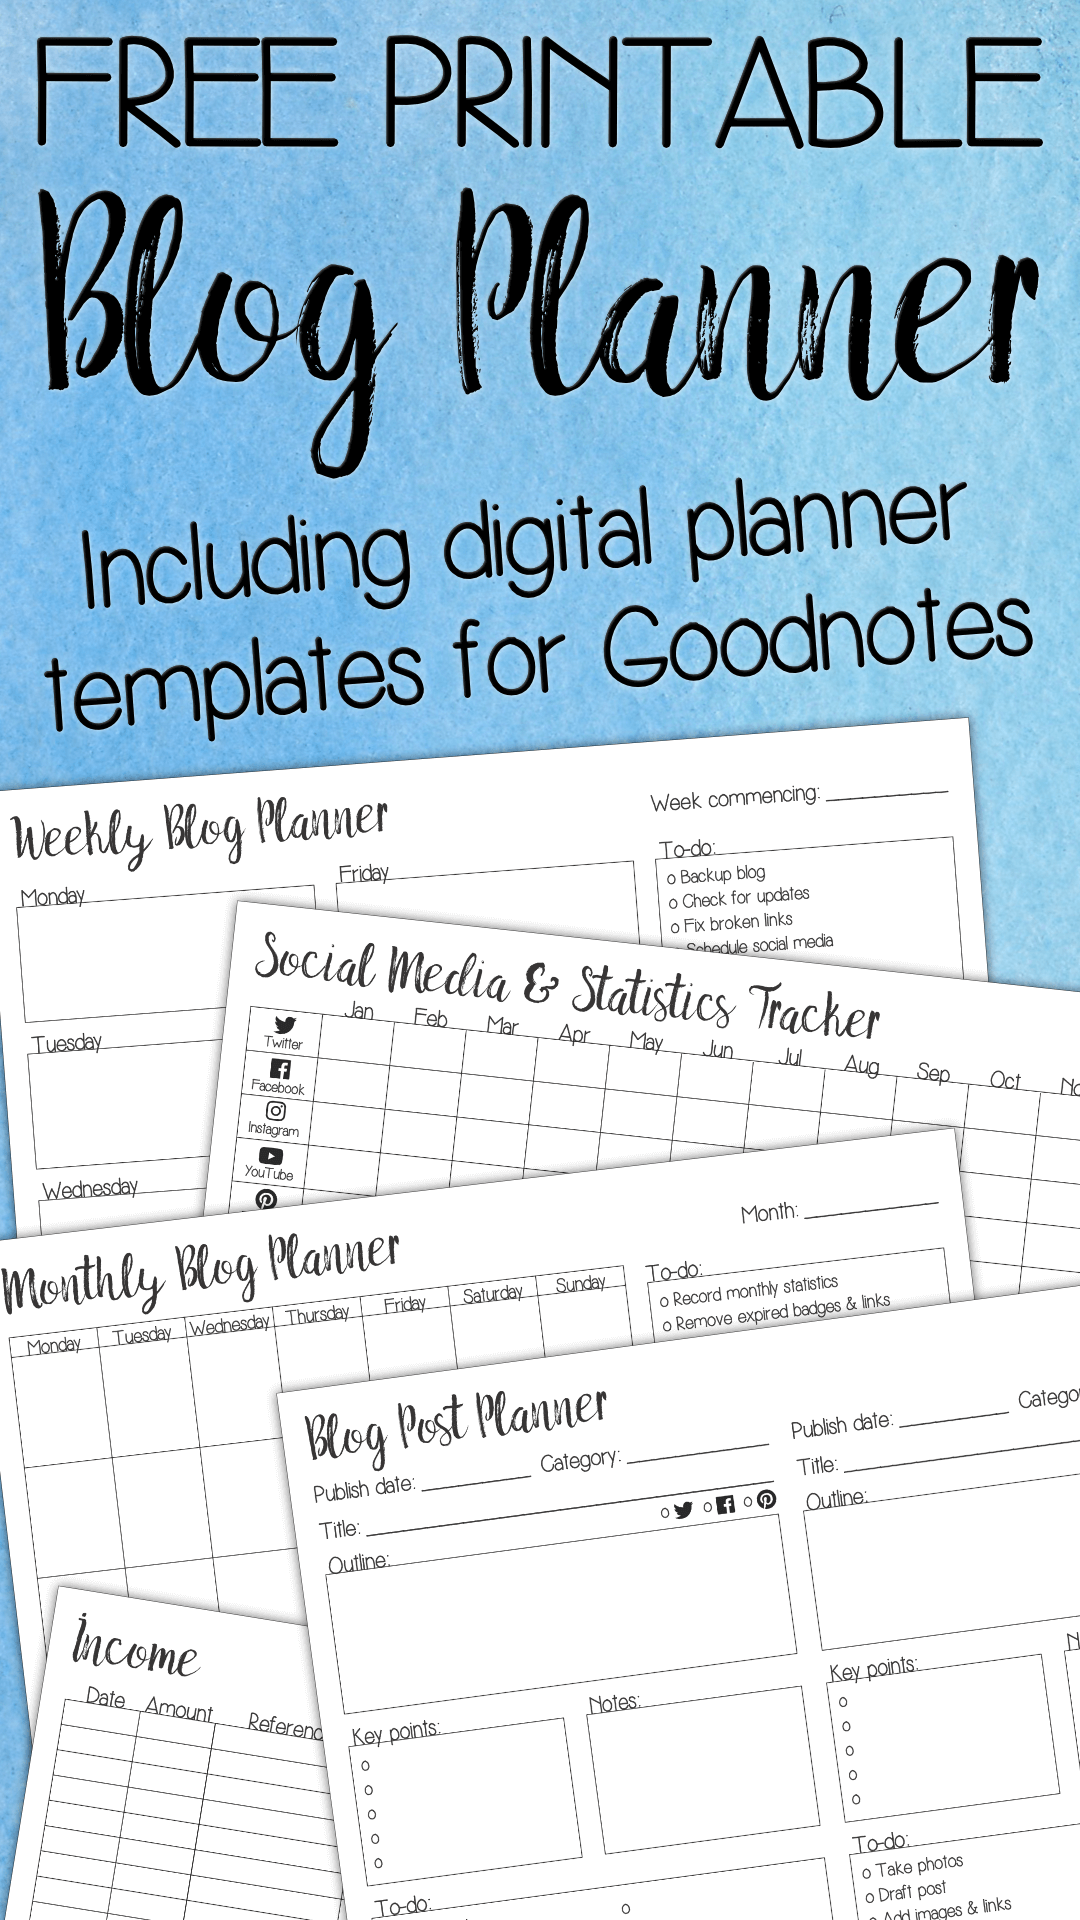 free printable blog planner inc digital goodnotes templates